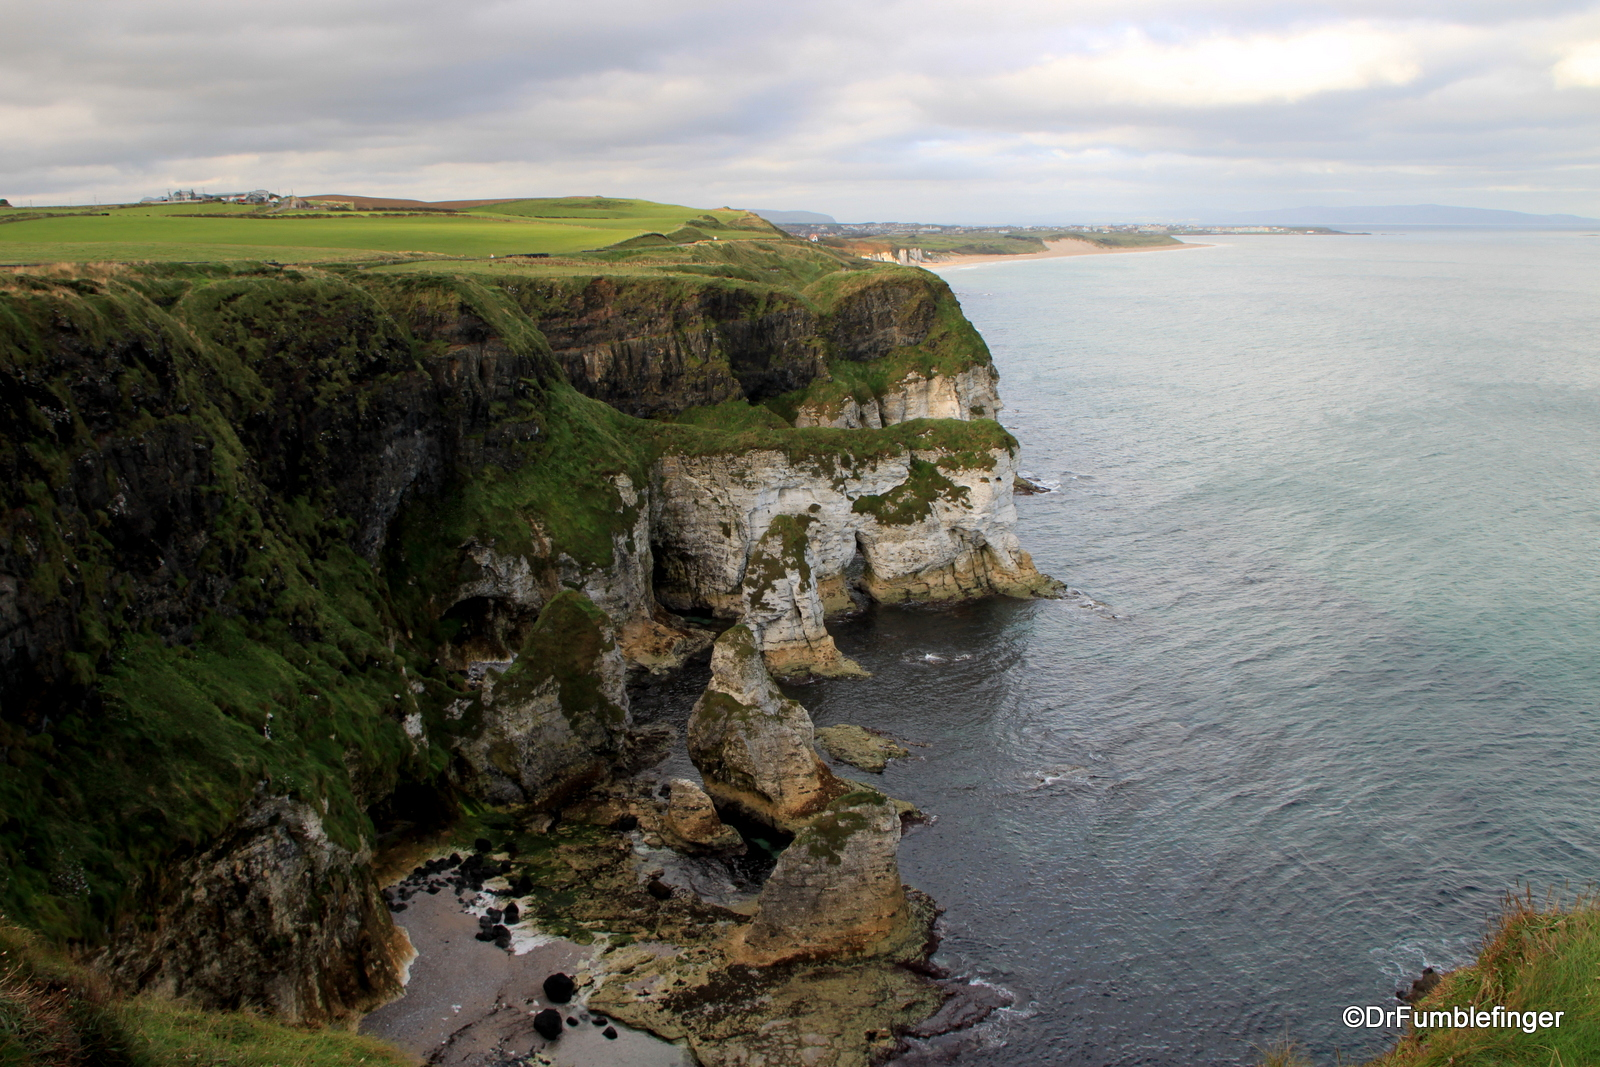 Antrim coast viewed from Dunluce Castle